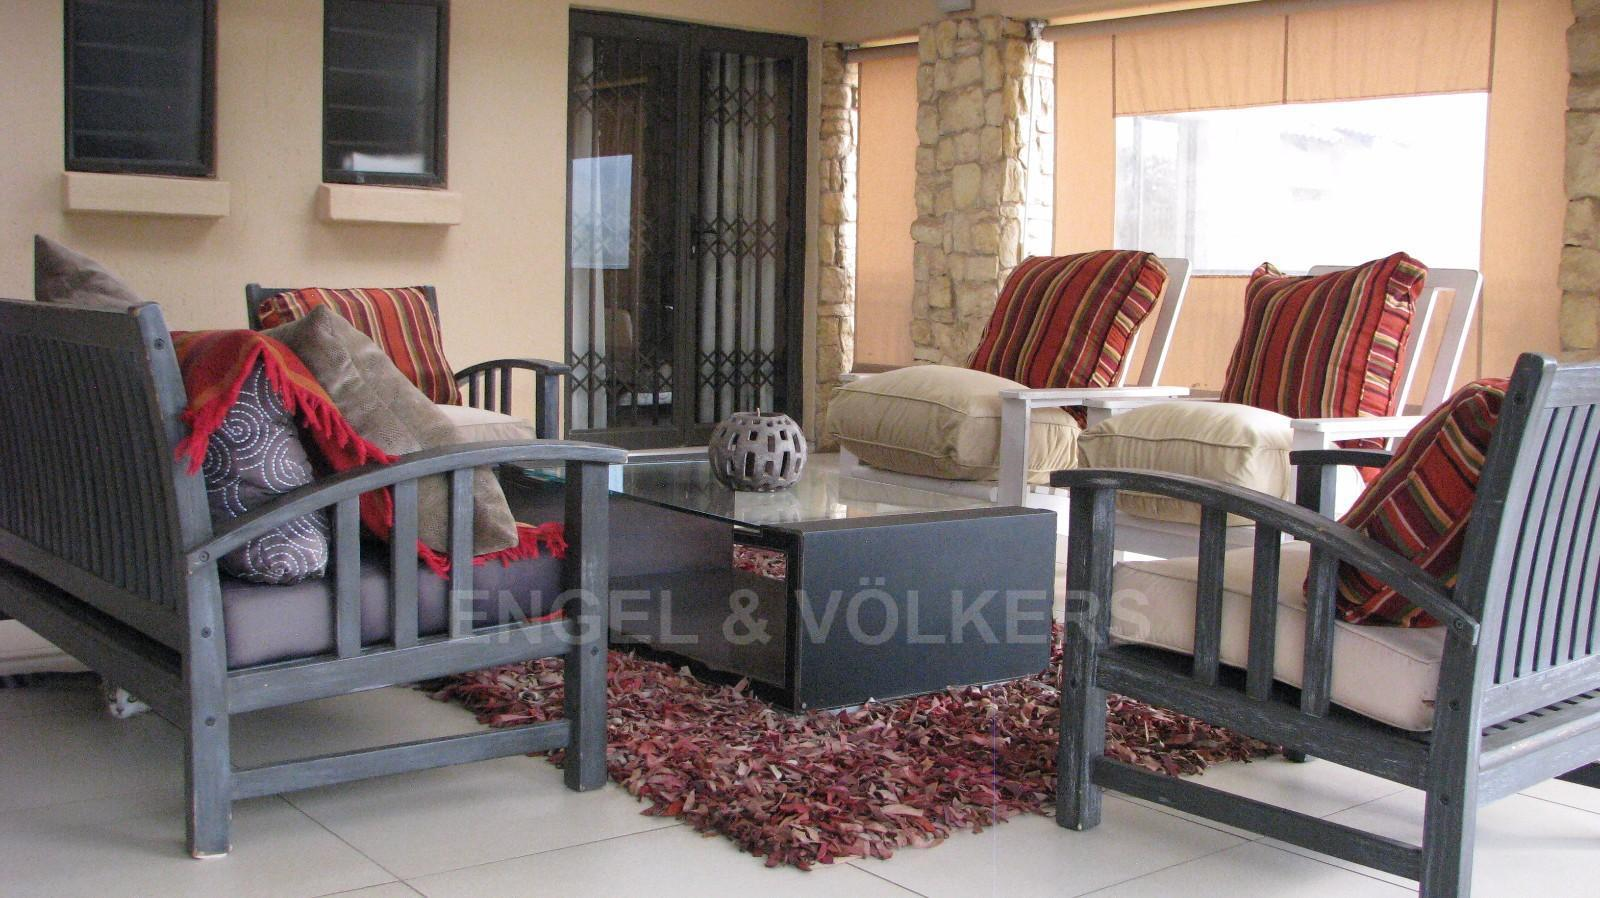 House in Melodie A/h - Shared patio area for 3 bedrooms upstairs